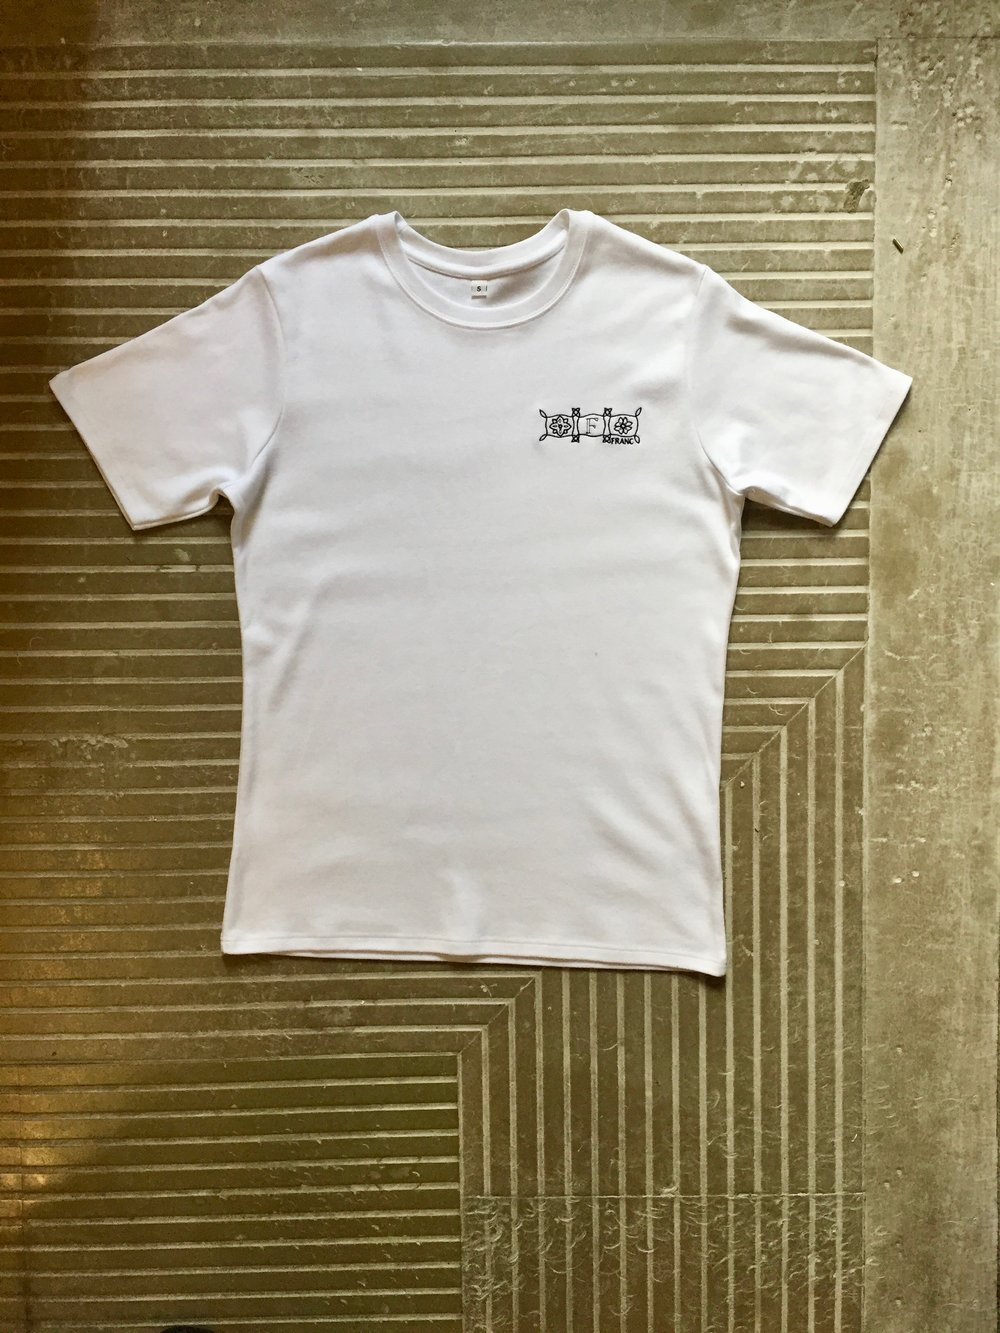 The T-Shirt -